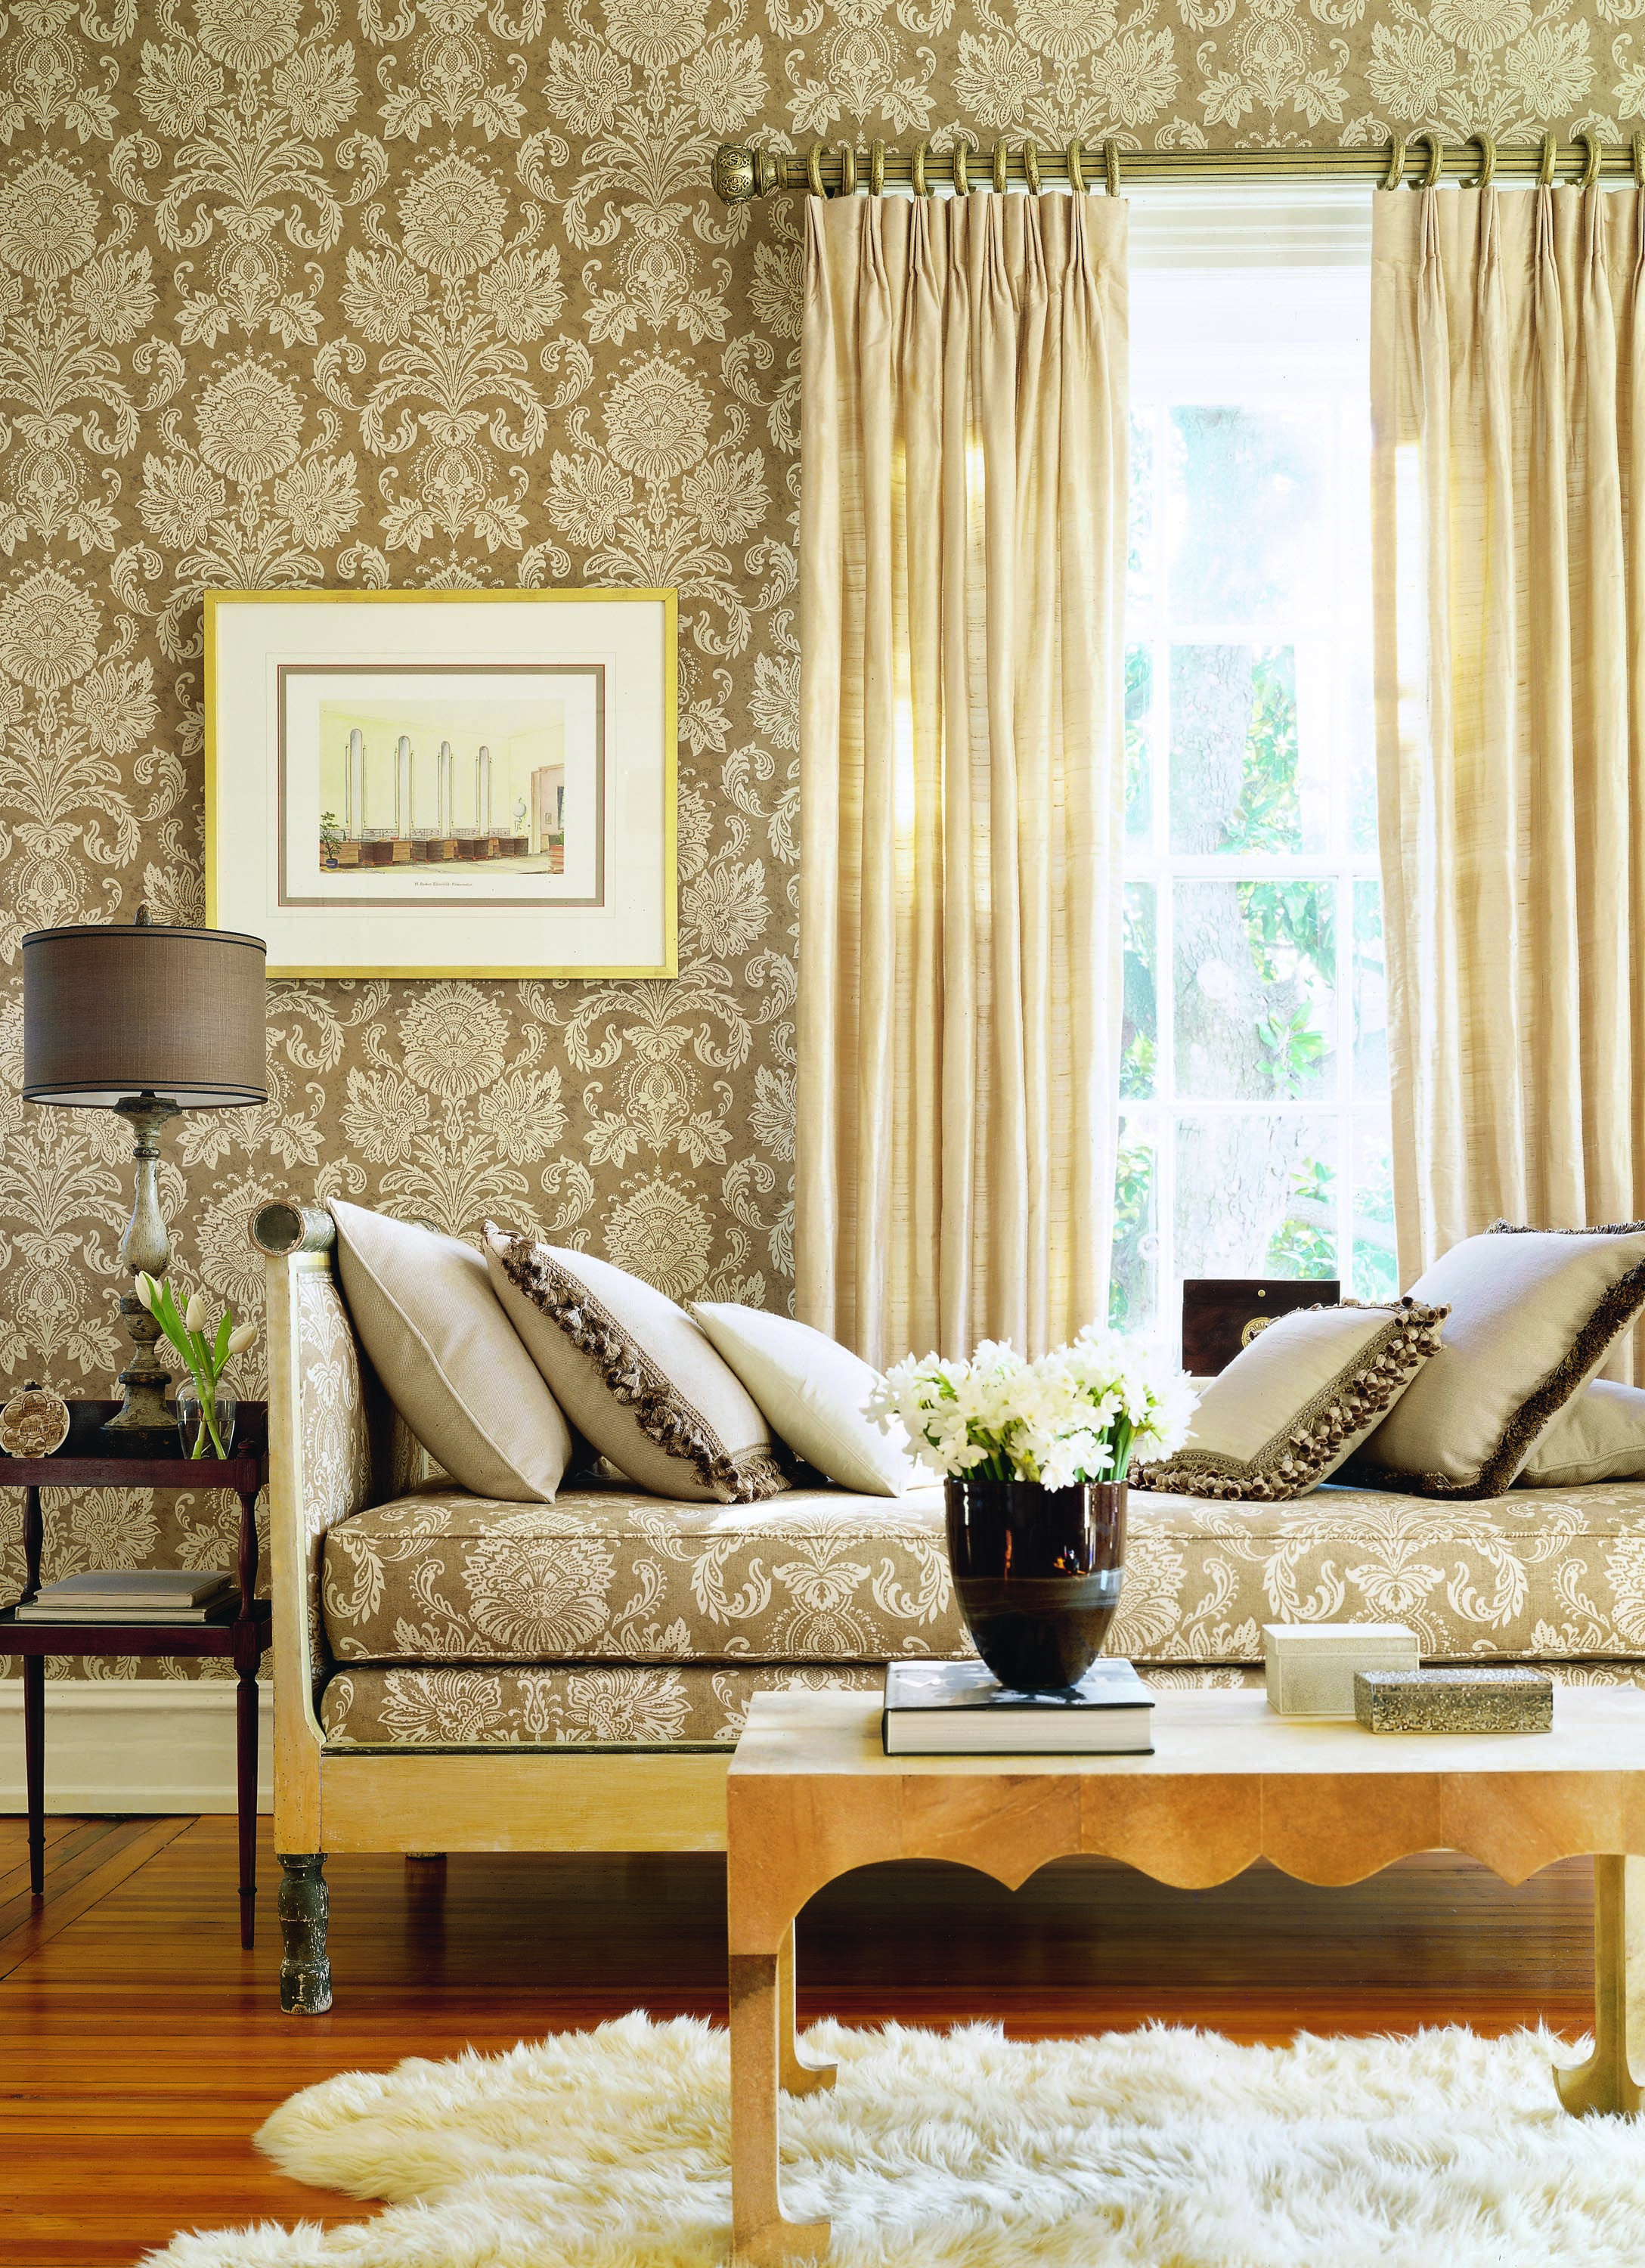 Sabeen Wallpaper And Fabric From Cypress Thibaut Damask Living Rooms Chic Room